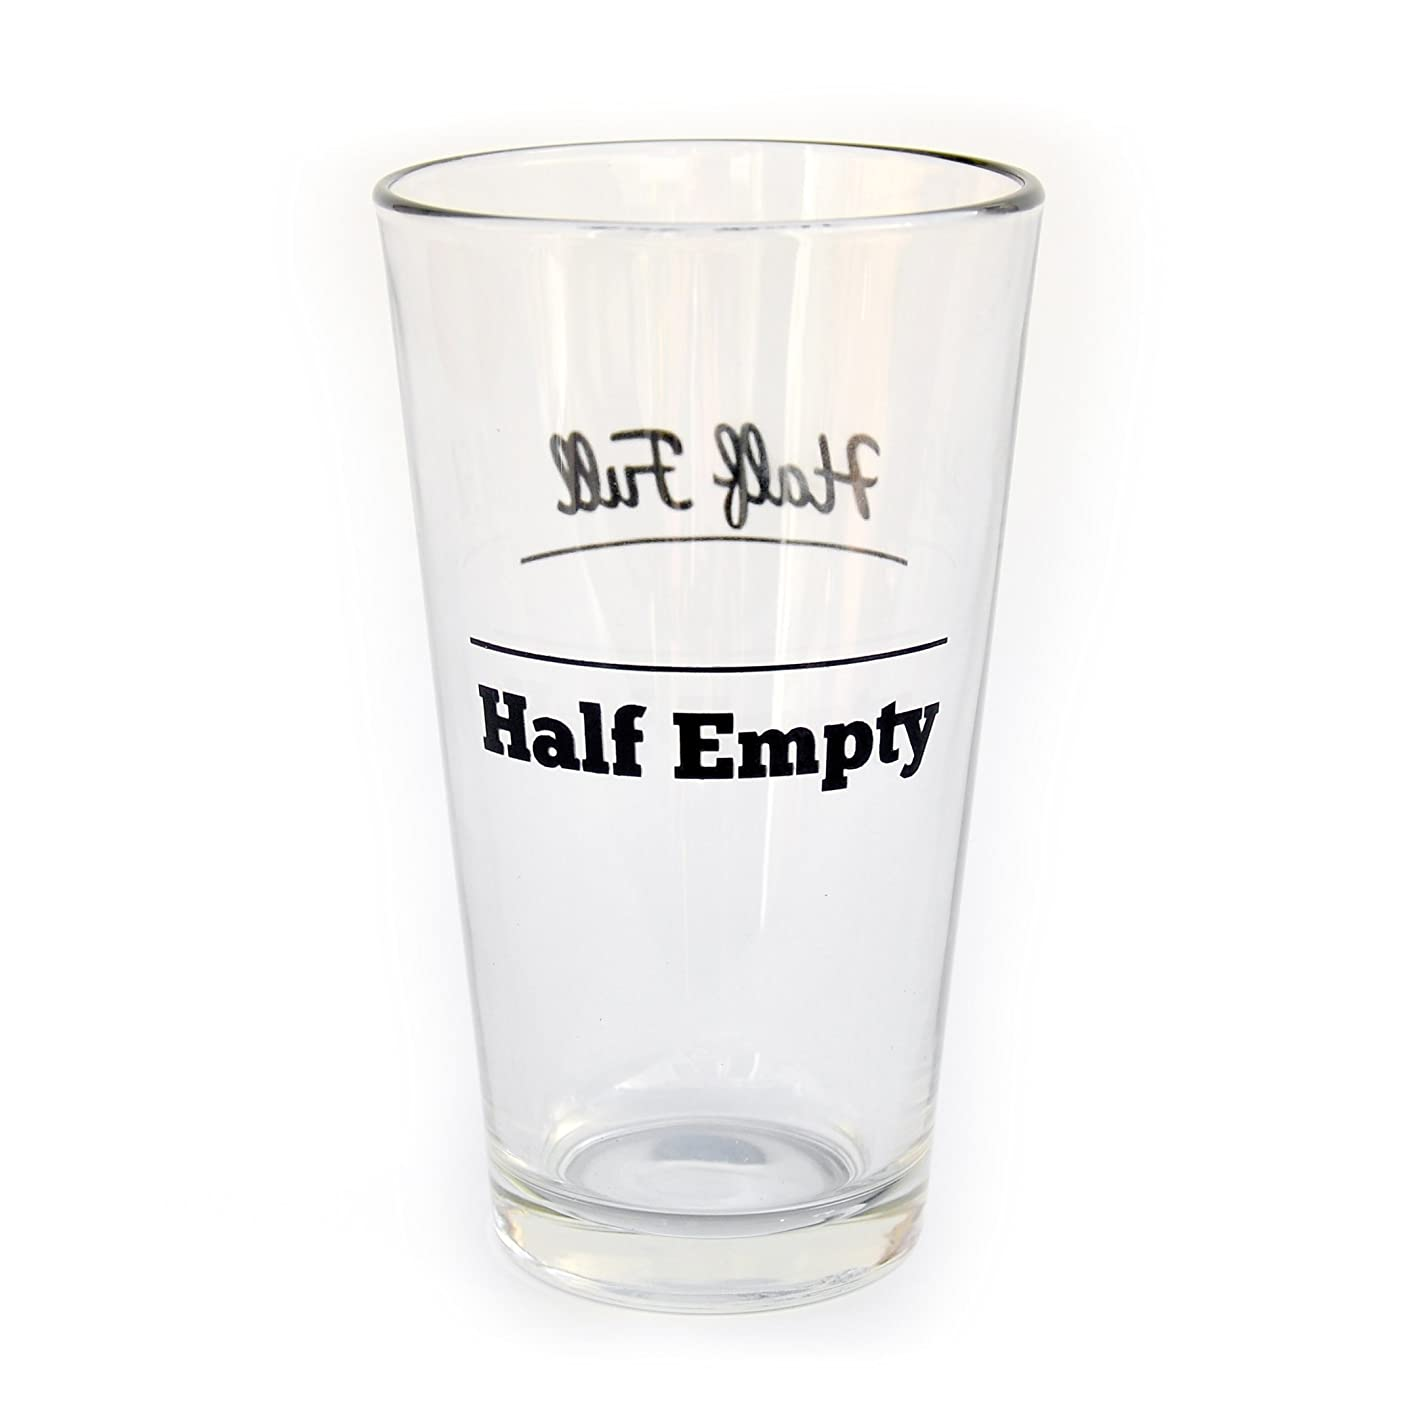 Funny Half Full/Half Empty Double-Sided Decorated Pint Glass